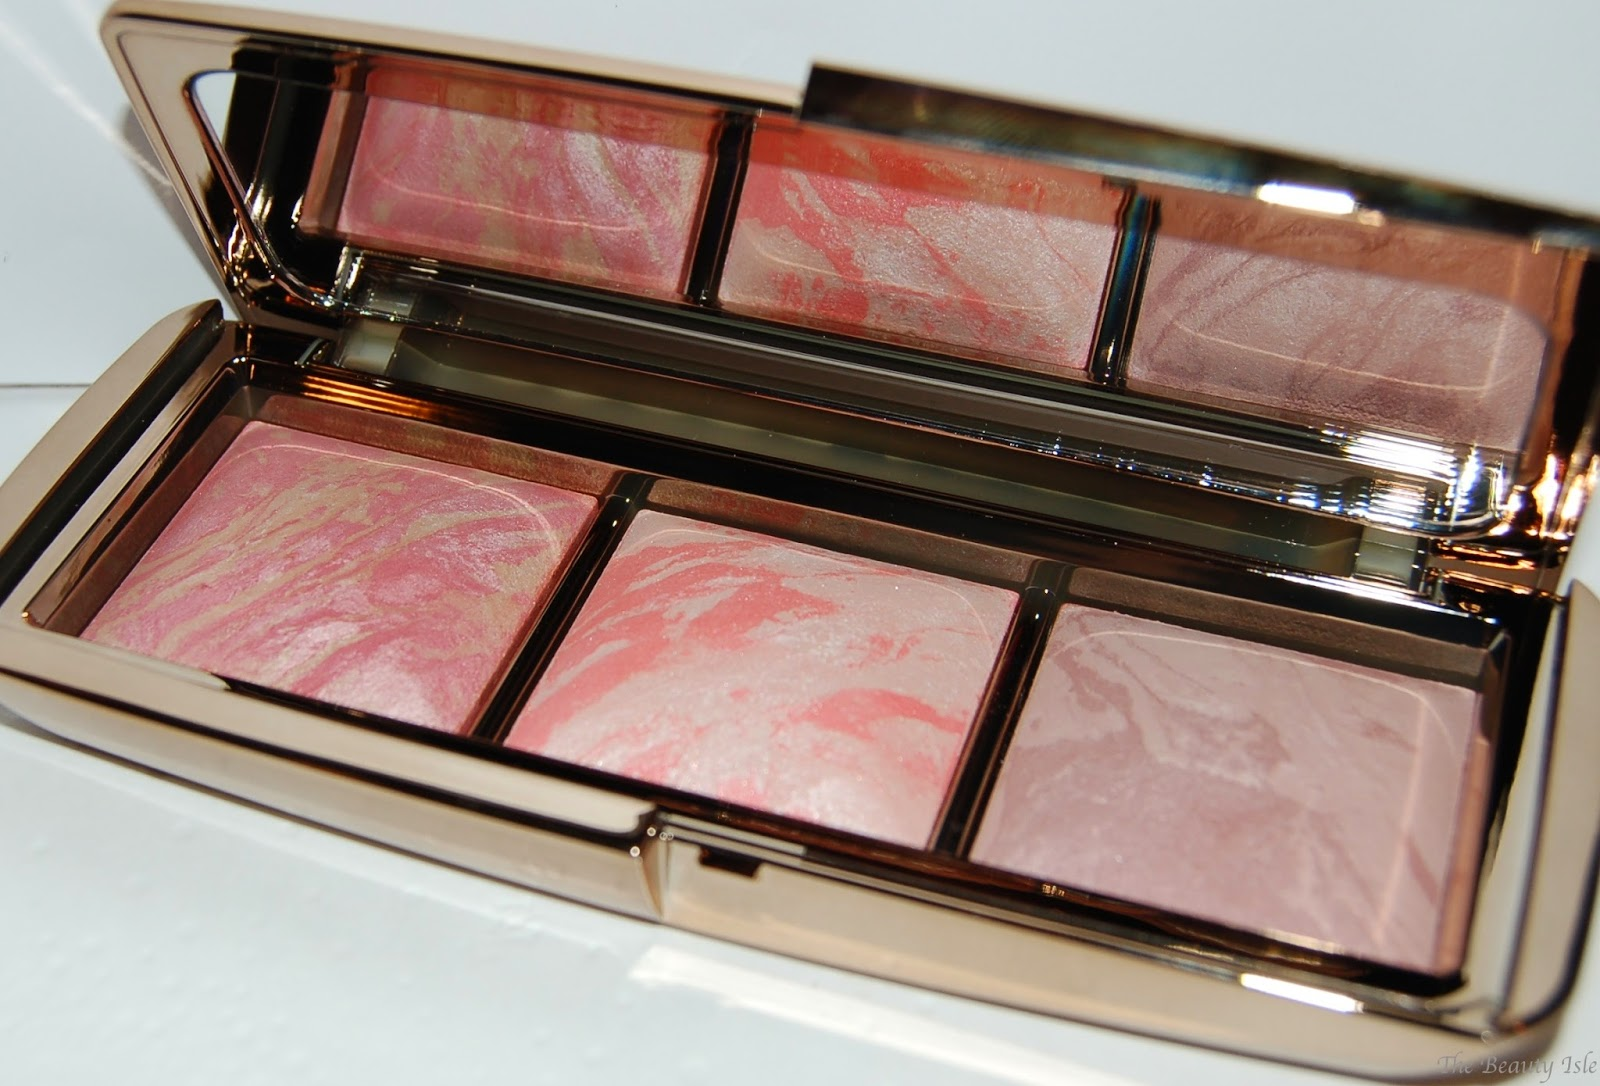 Hourglass Ambient Lighthing Powder Blush Palette